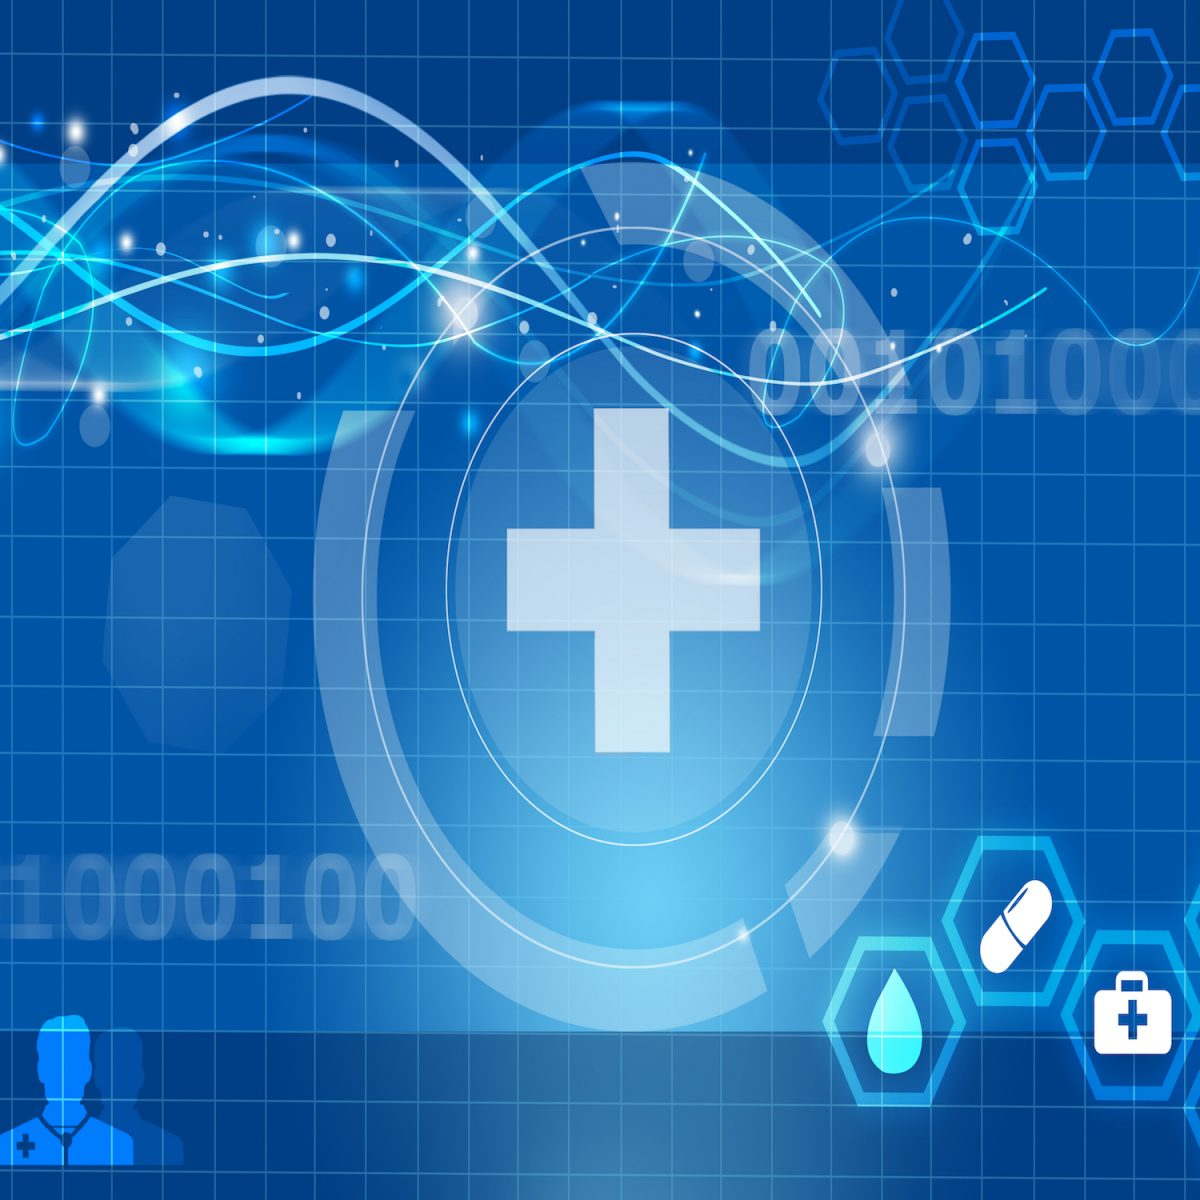 Digital Innovation in Health Care